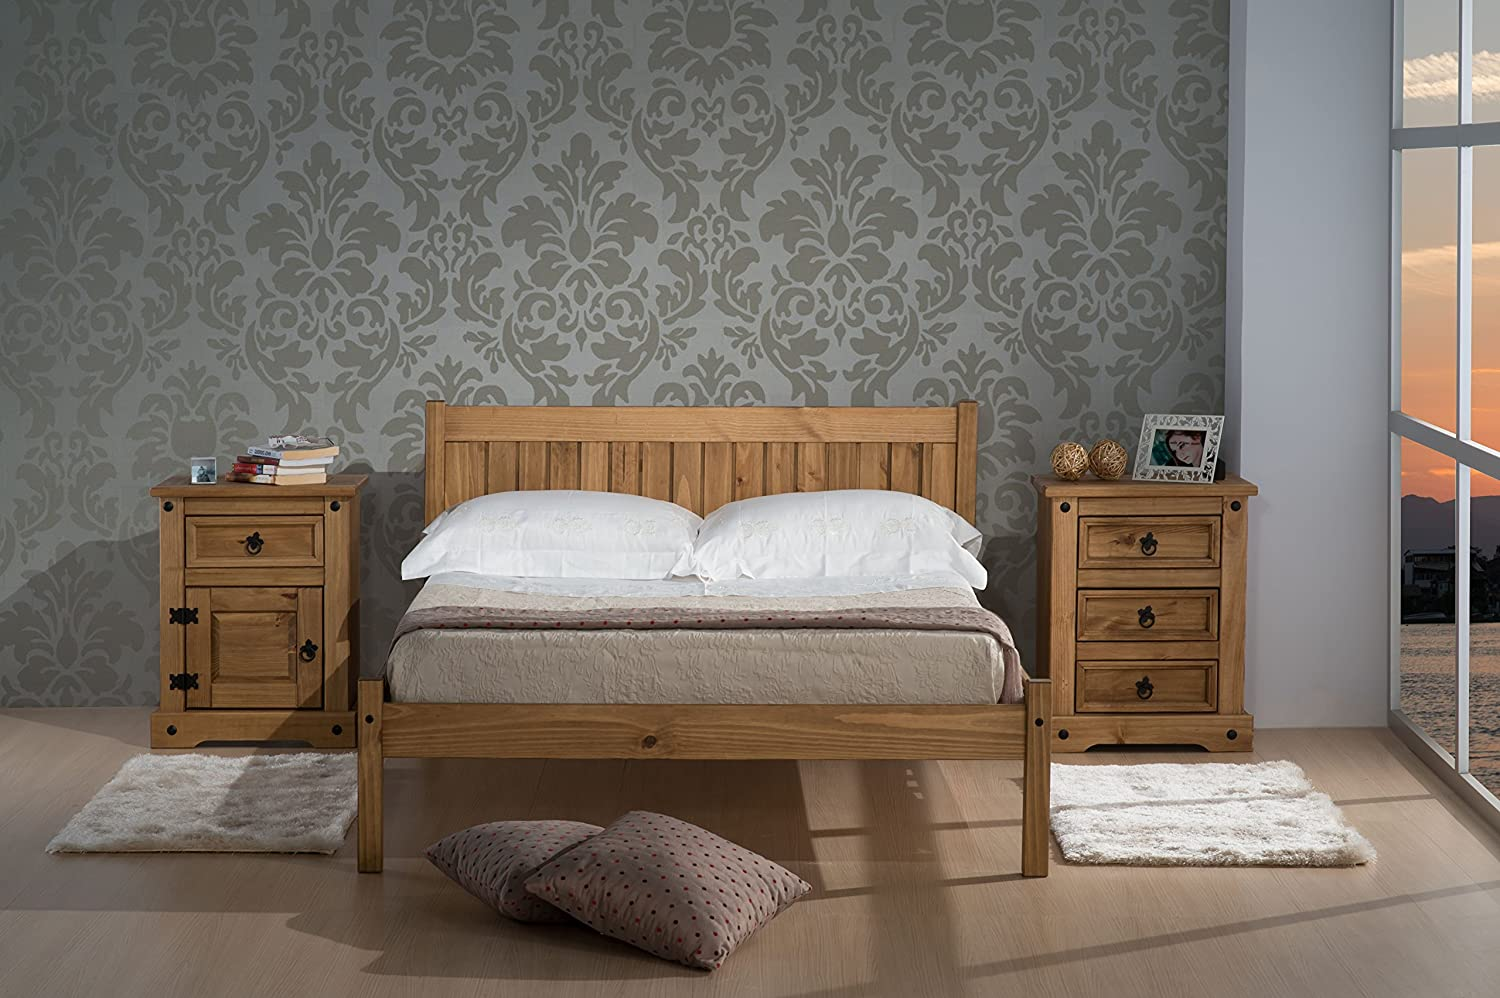 Birlea Rio Bed - Wood, Waxed Pine, Small Double: Amazon.co.uk ...